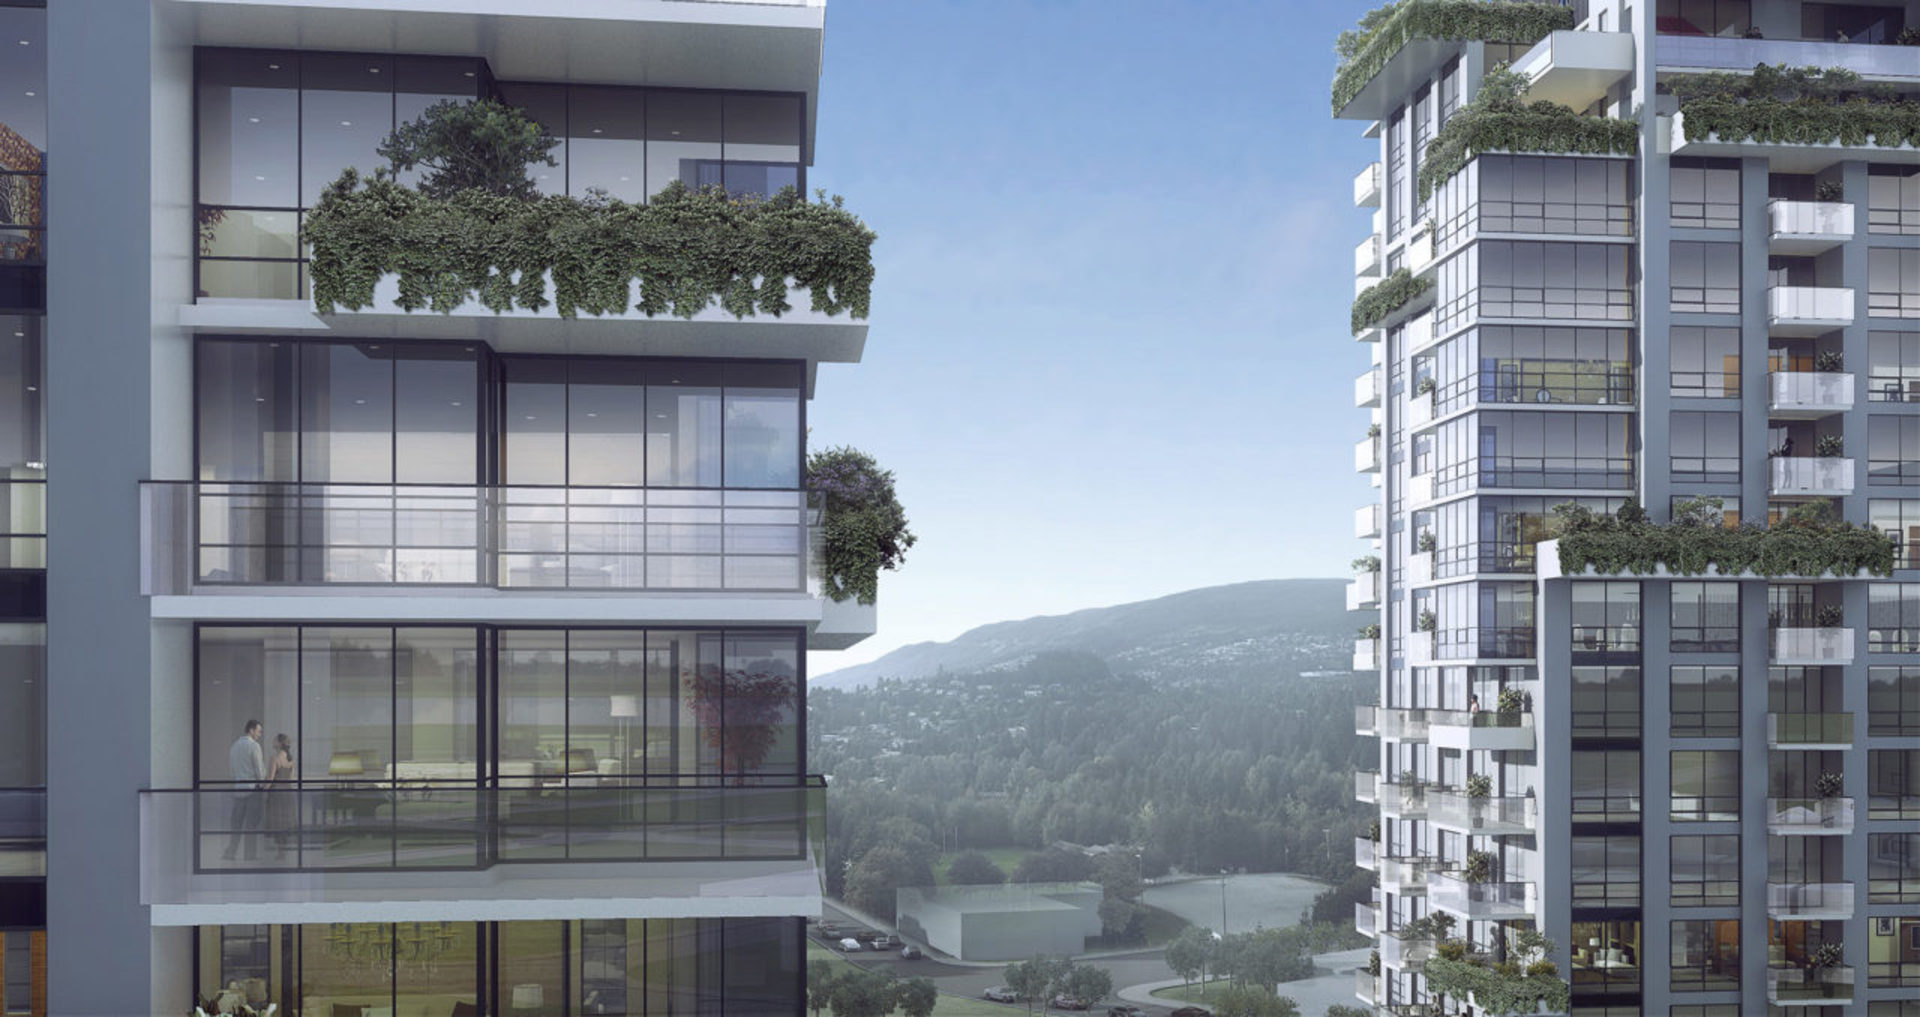 park-west-at-lions-gate-plants-on-some-balconies at Park West at Lions Gate Village (1633 Capilano Road, North Vancouver)